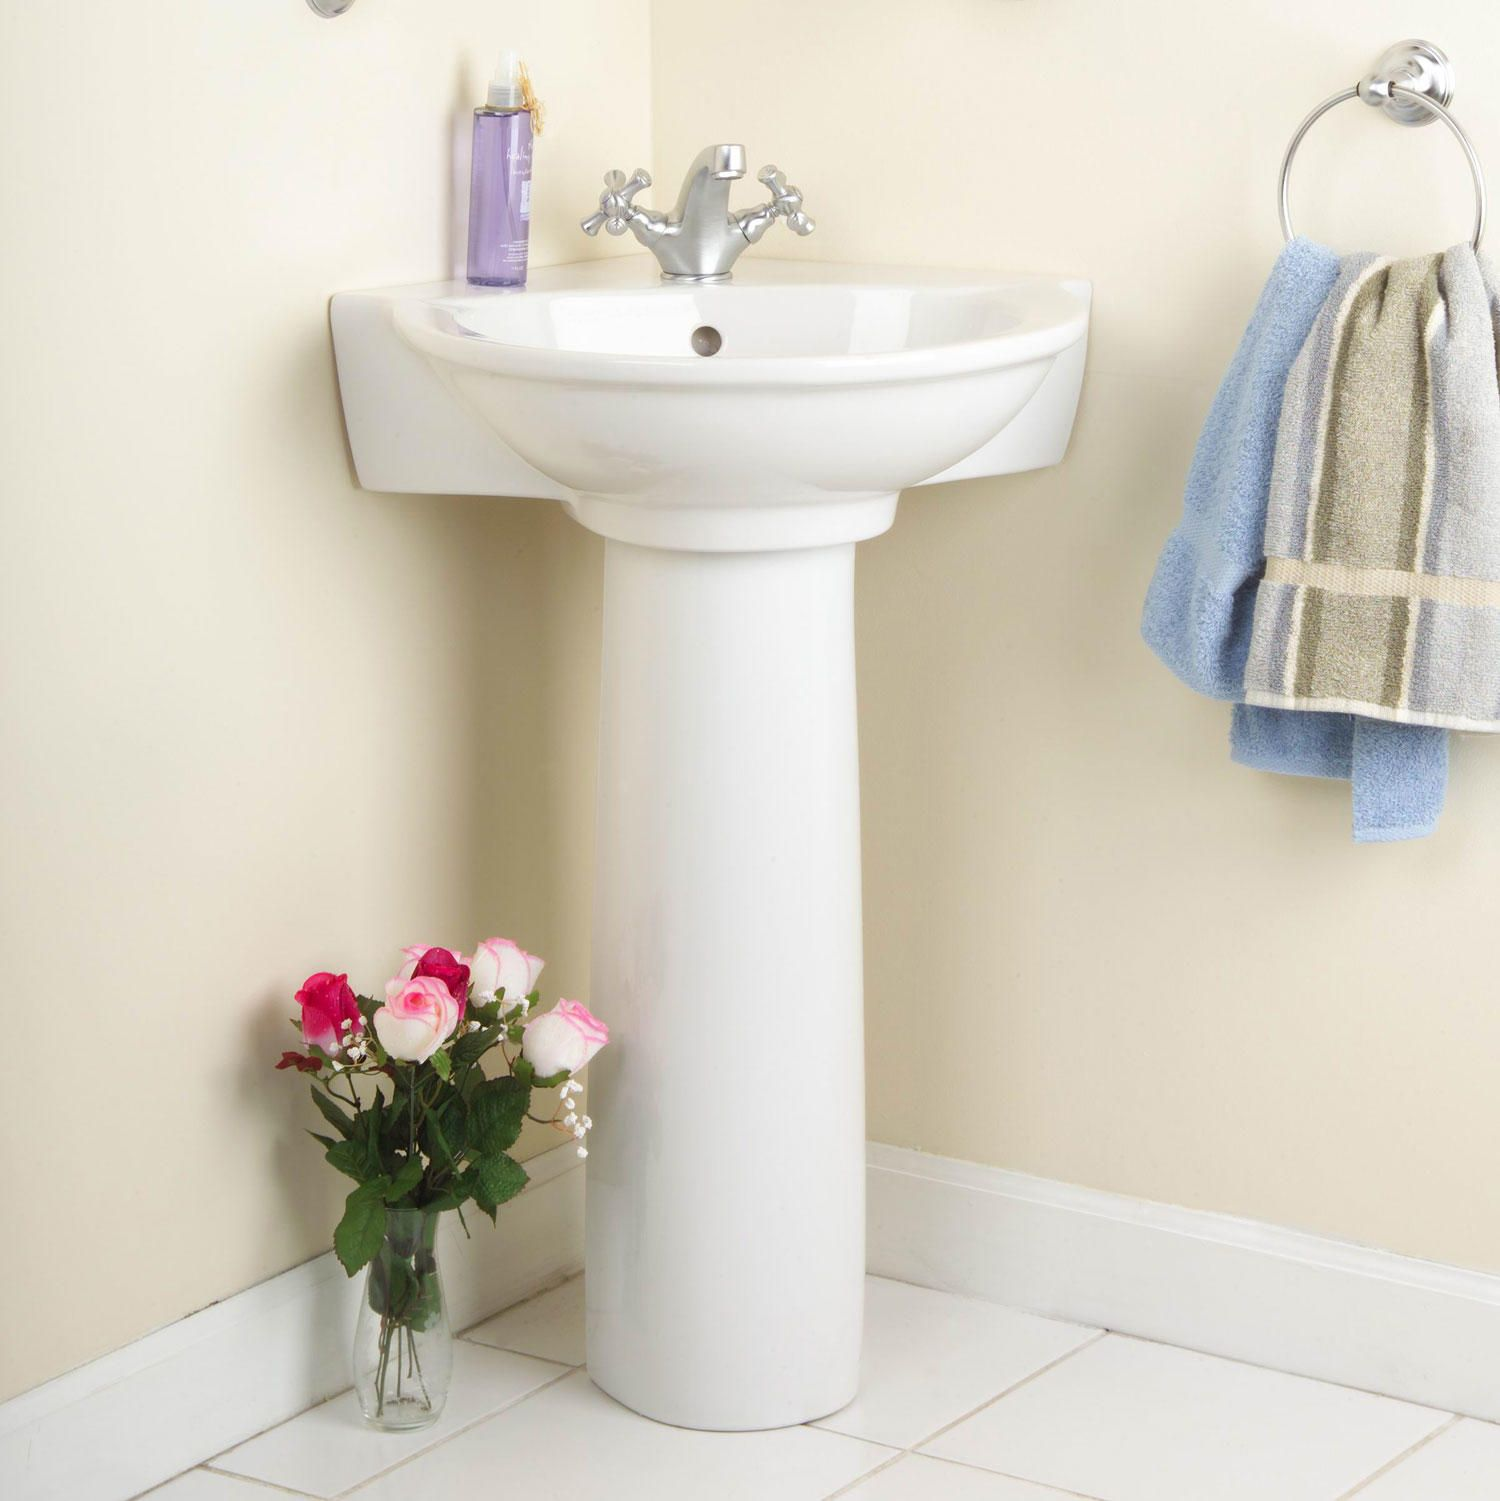 Gaston Corner Pedestal Sink   Corner Sinks   Bathroom Sinks   Bathroom